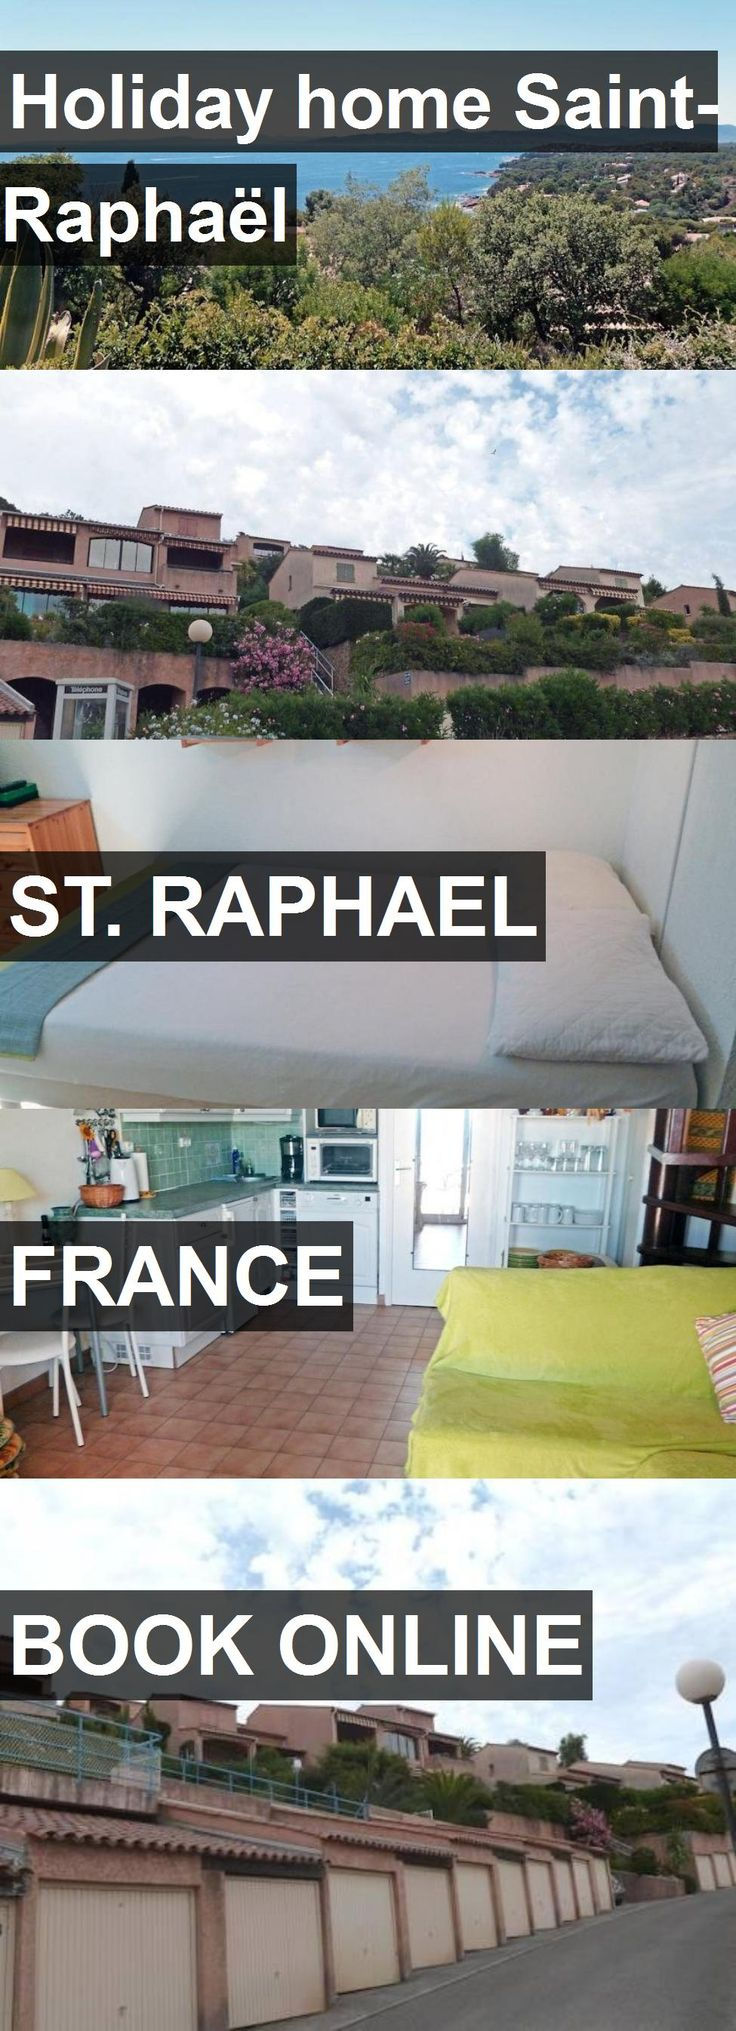 Hotel Holiday home Saint-Raphaël in St. Raphael, France. For more information, photos, reviews and best prices please follow the link. #France #St.Raphael #HolidayhomeSaint-Raphaël #hotel #travel #vacation